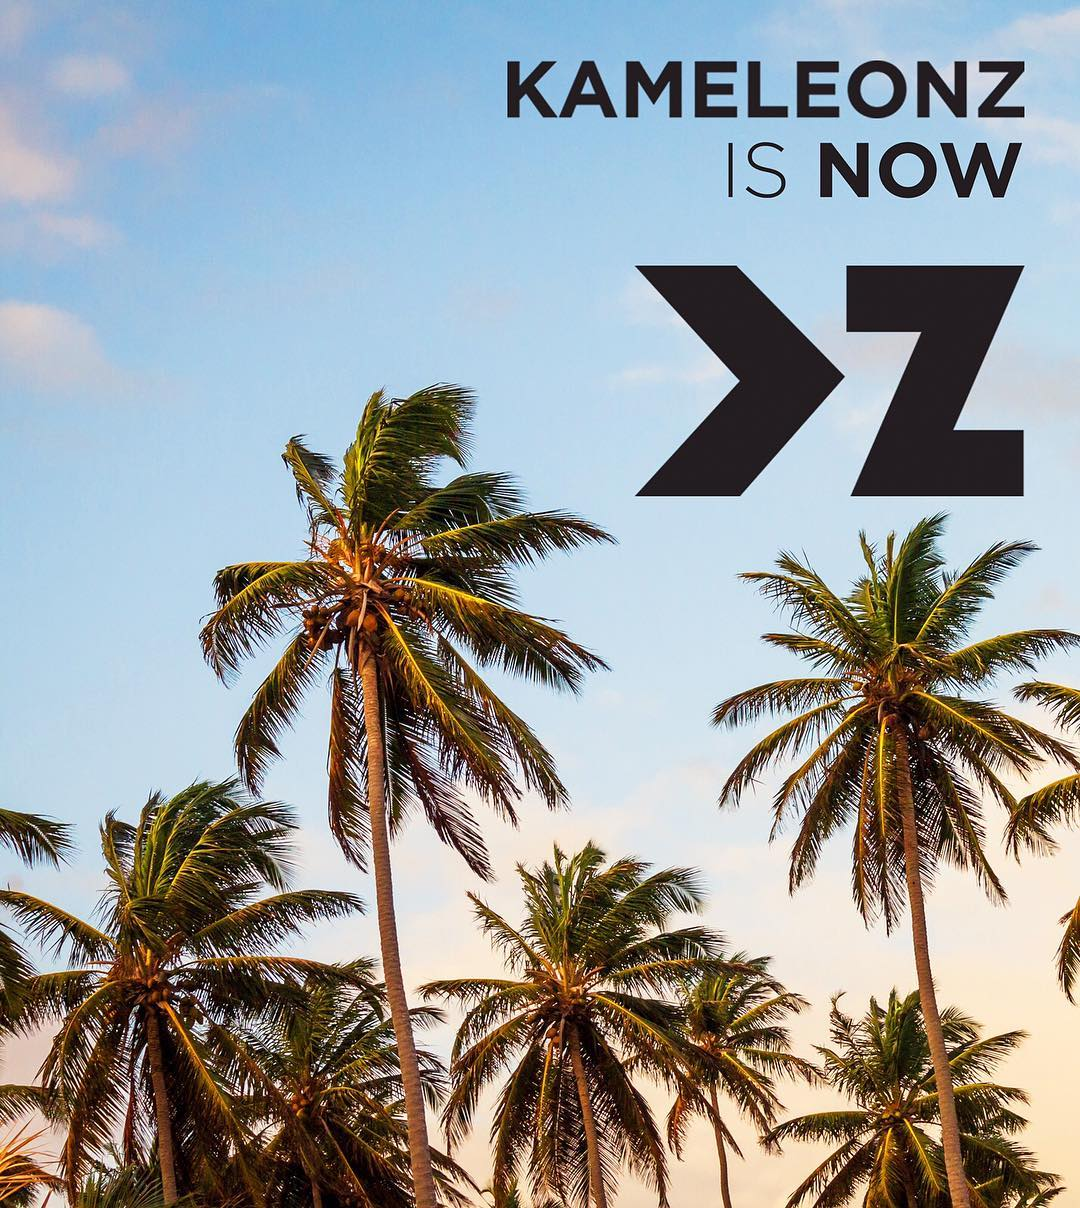 Kameleonz is now KZ! Follow us @KZgear. Why the change? For starters, KZ is easier to say, spell, read, remember, etc. It also allows the brand to expand beyond interchangeable sunglasses to bring you more shades, more beanies & more adventure gear! To...